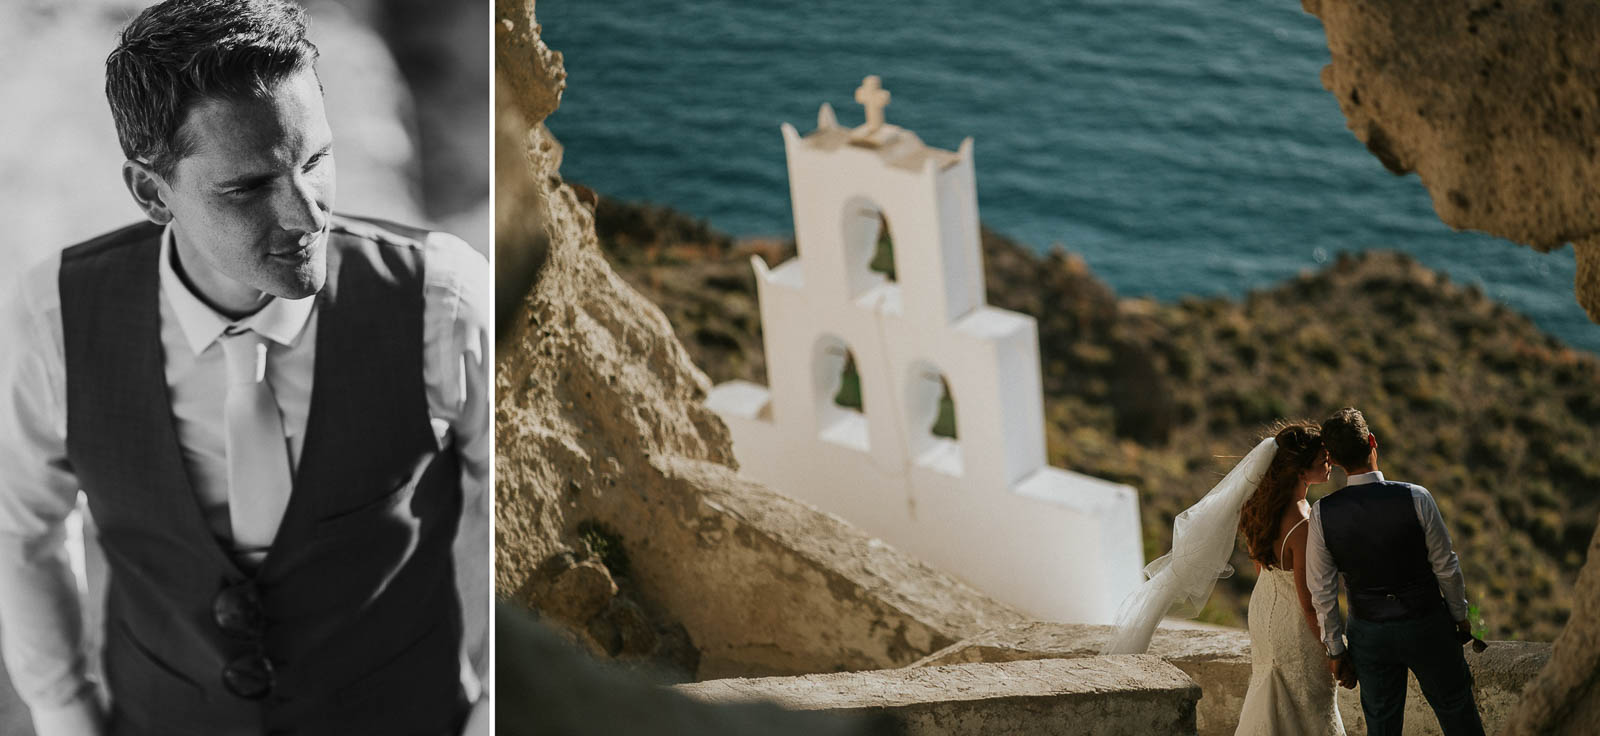 Santorini-Wedding-Photographer-Greece-Destination-Weddings-Mait-Juriado-M&J-Studios-070